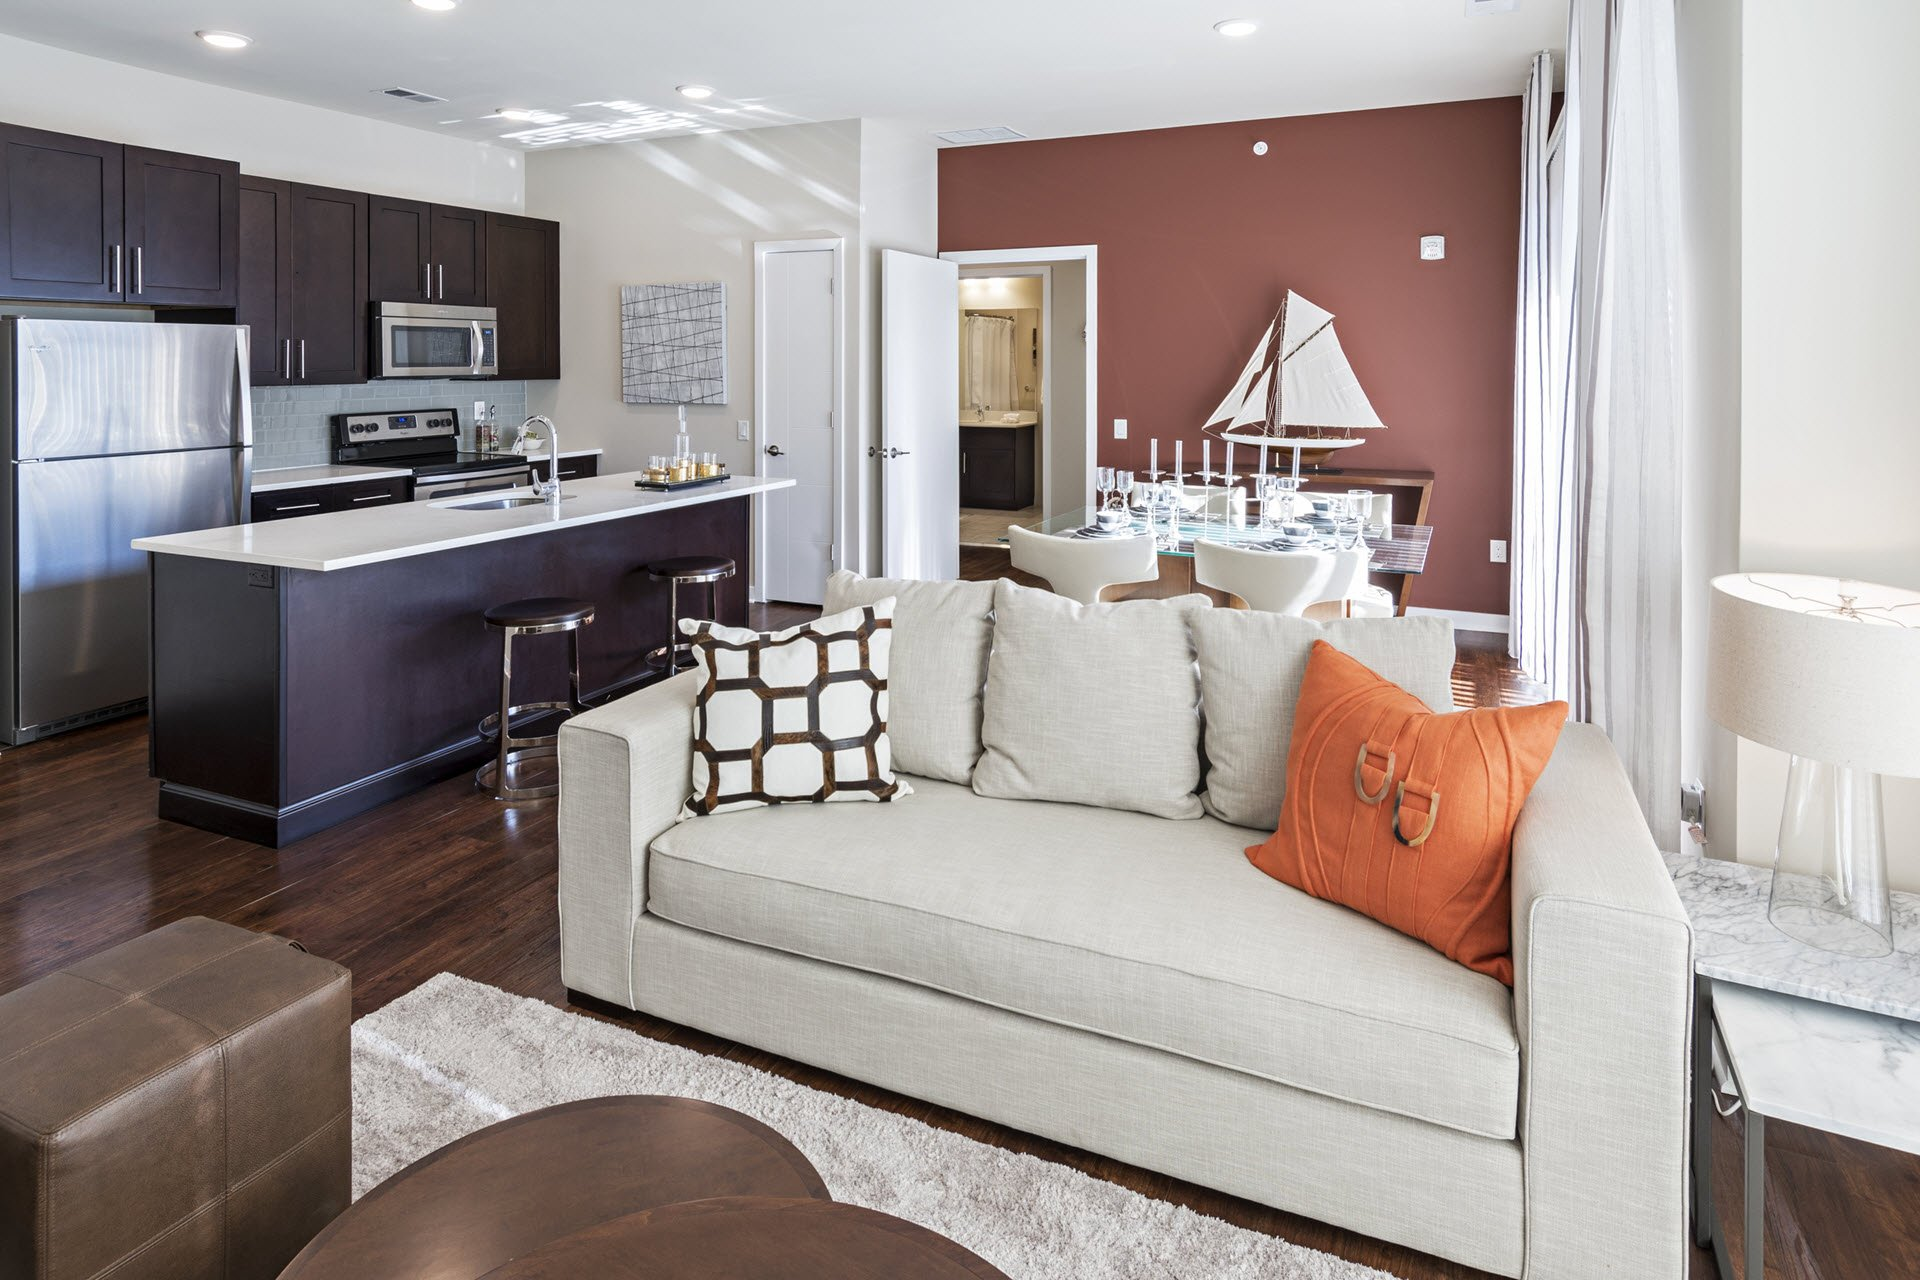 Open Floorplans at West Side Lofts, Red Bank NJ 07701